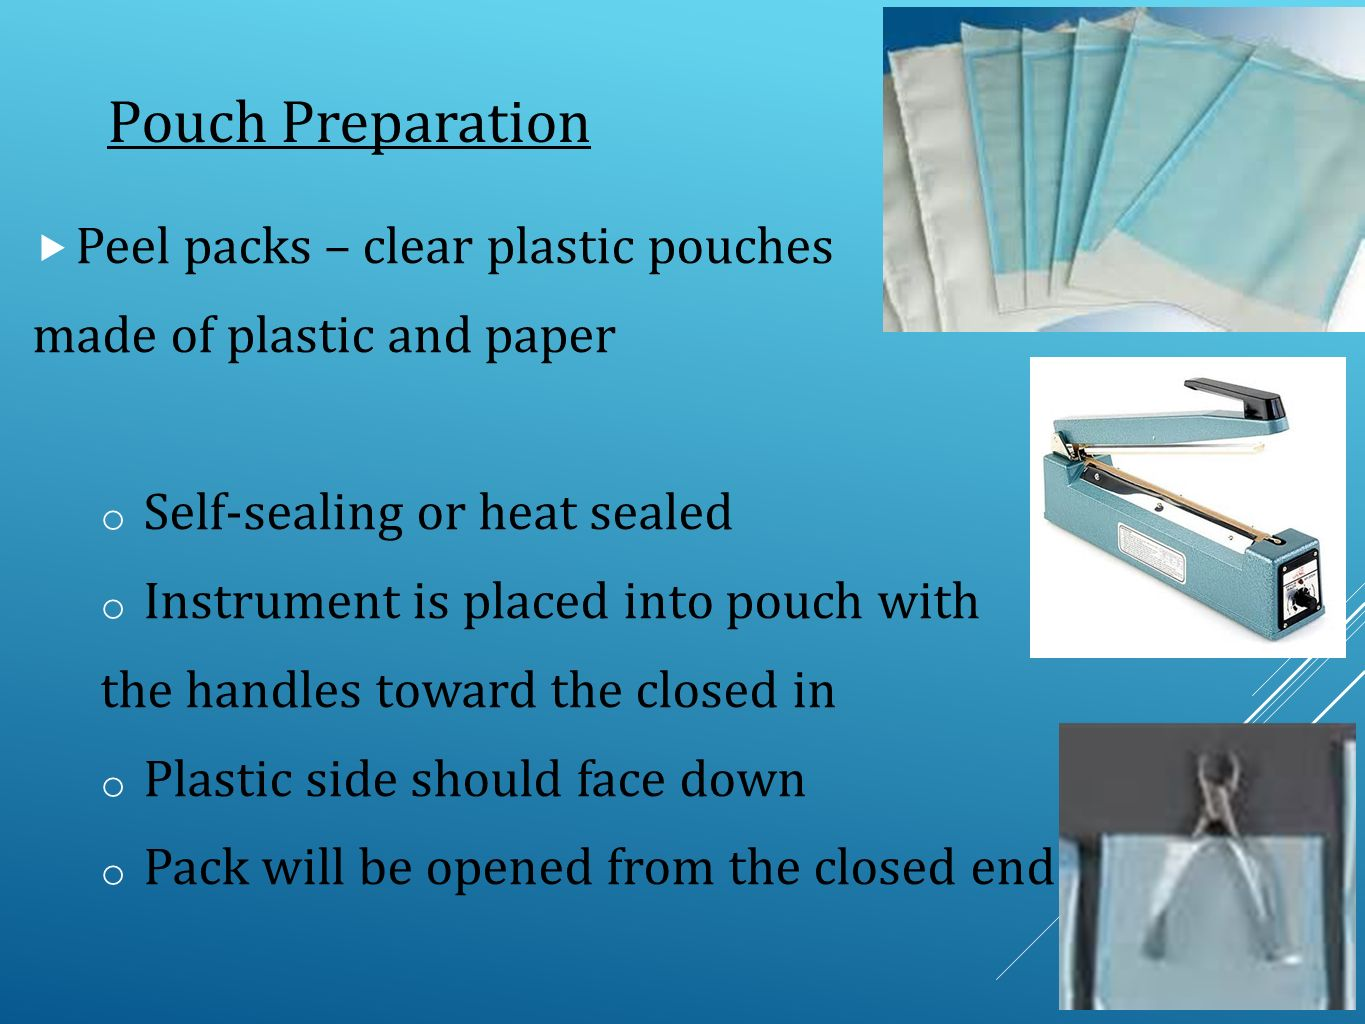 Aseptic technique and Sterilization Methods CTVT pgs